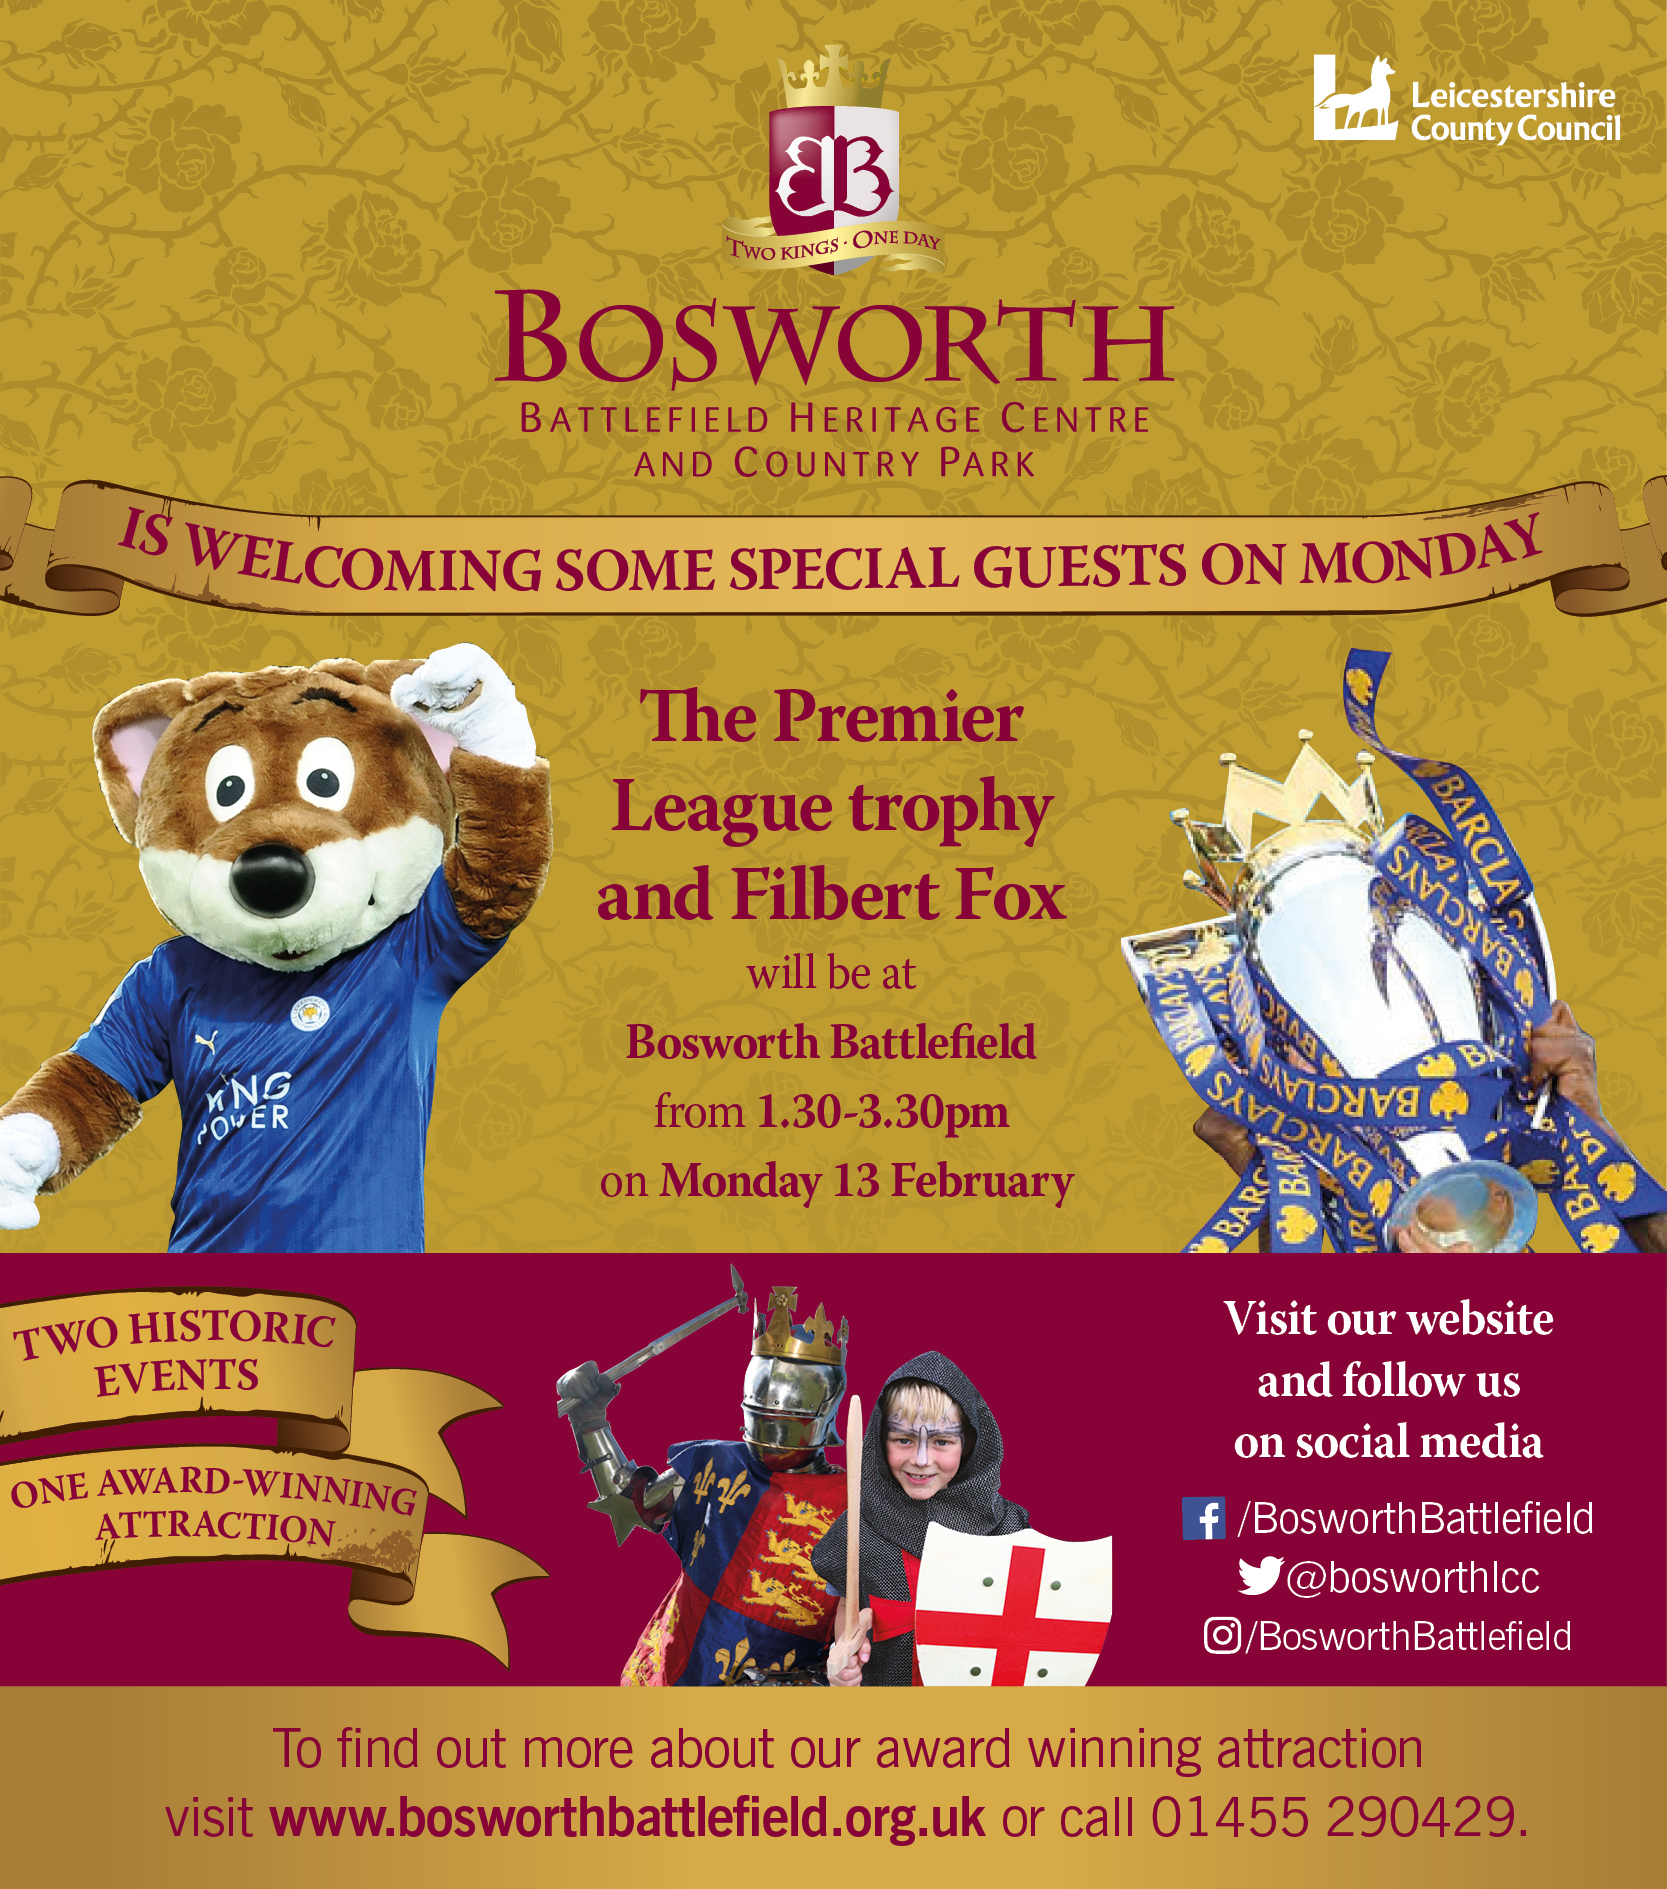 The Premier League Trophy & Filbert Fox at Bosworth Battlefield